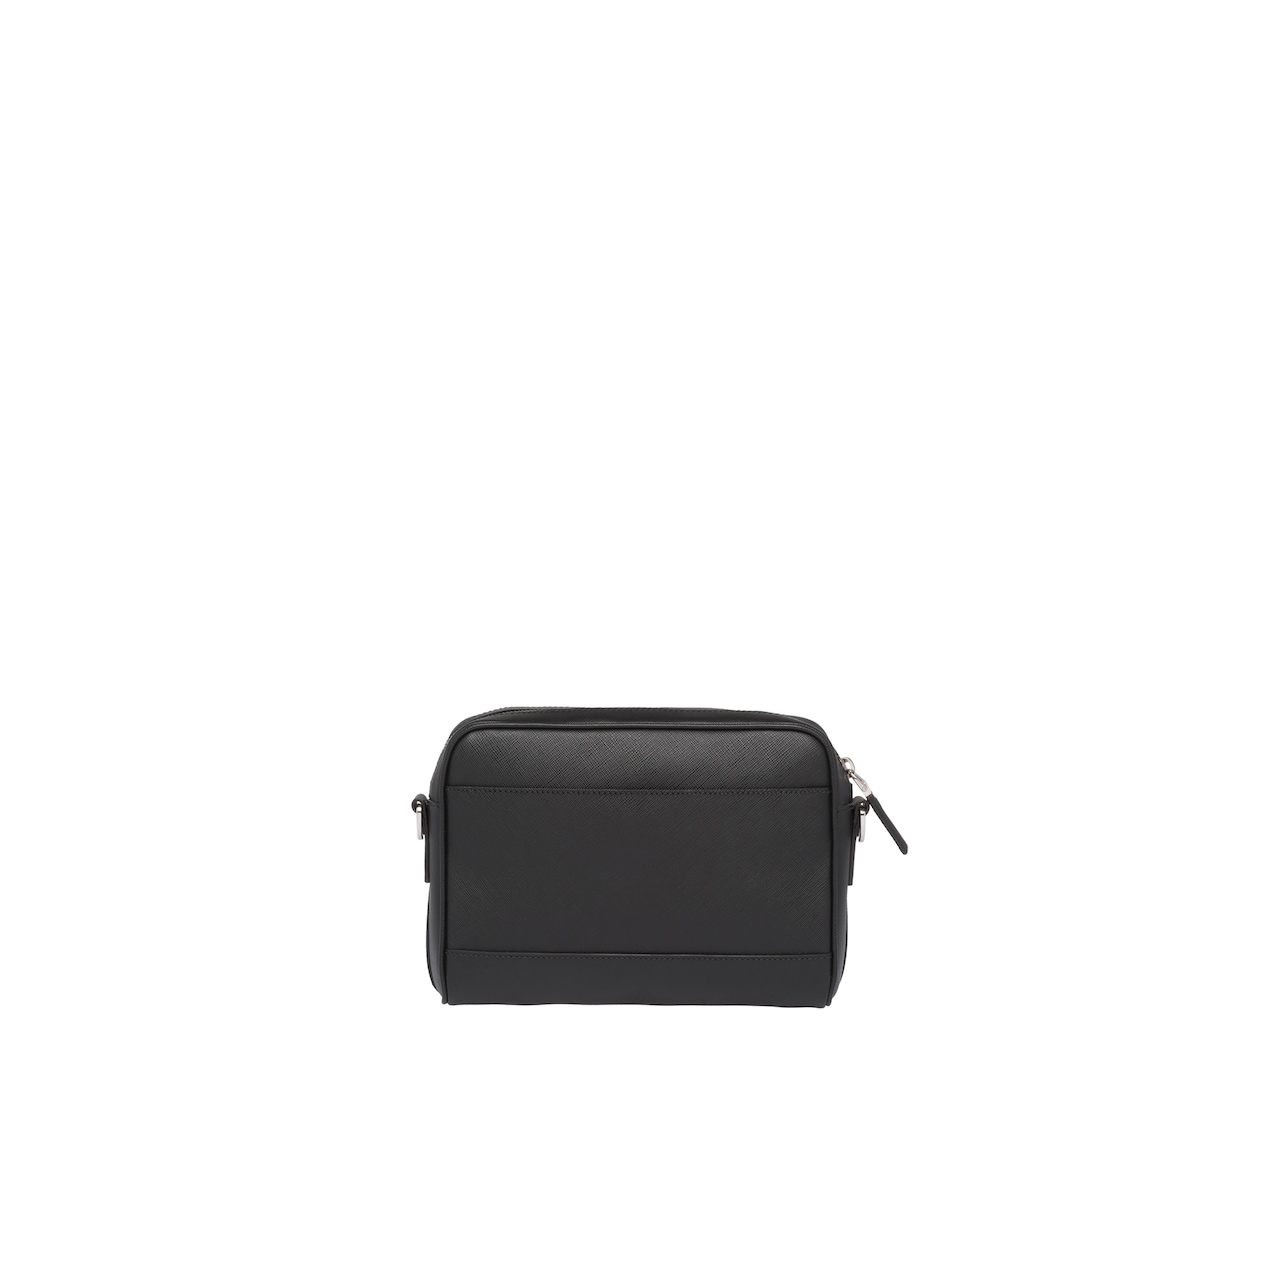 Prada Saffiano leather shoulder bag 4